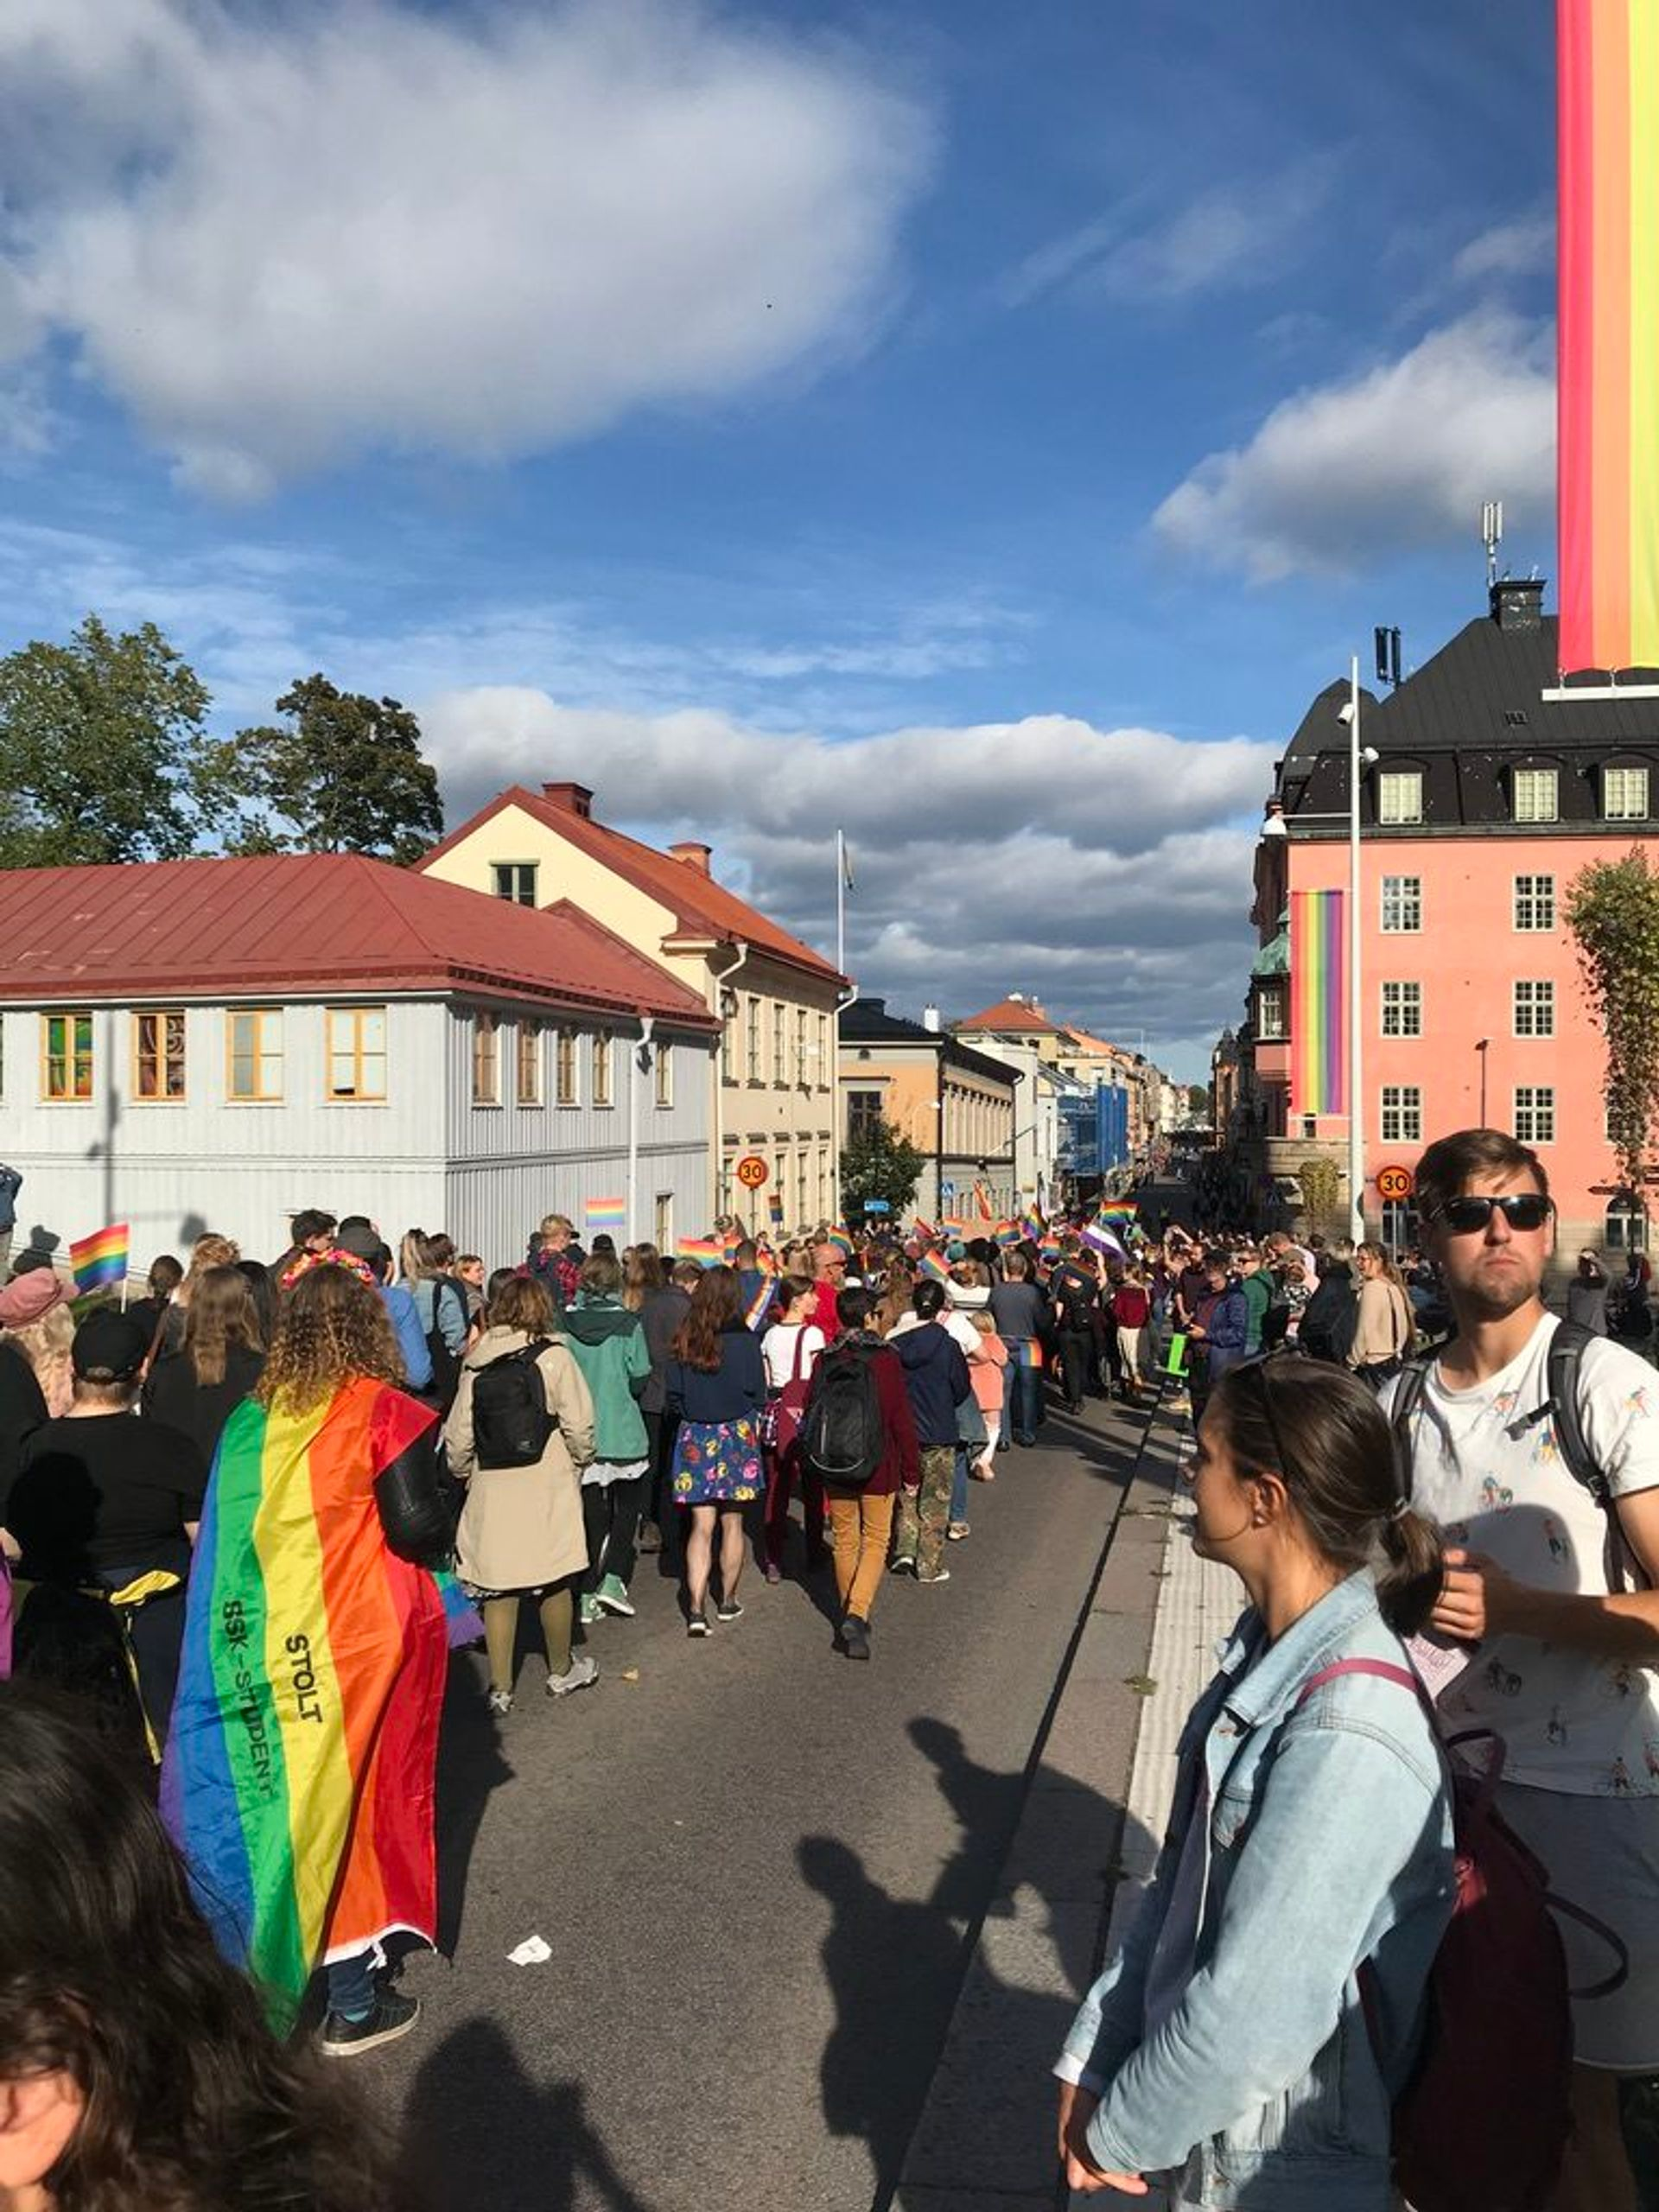 A large group of people walking down a street waving rainbow flags.